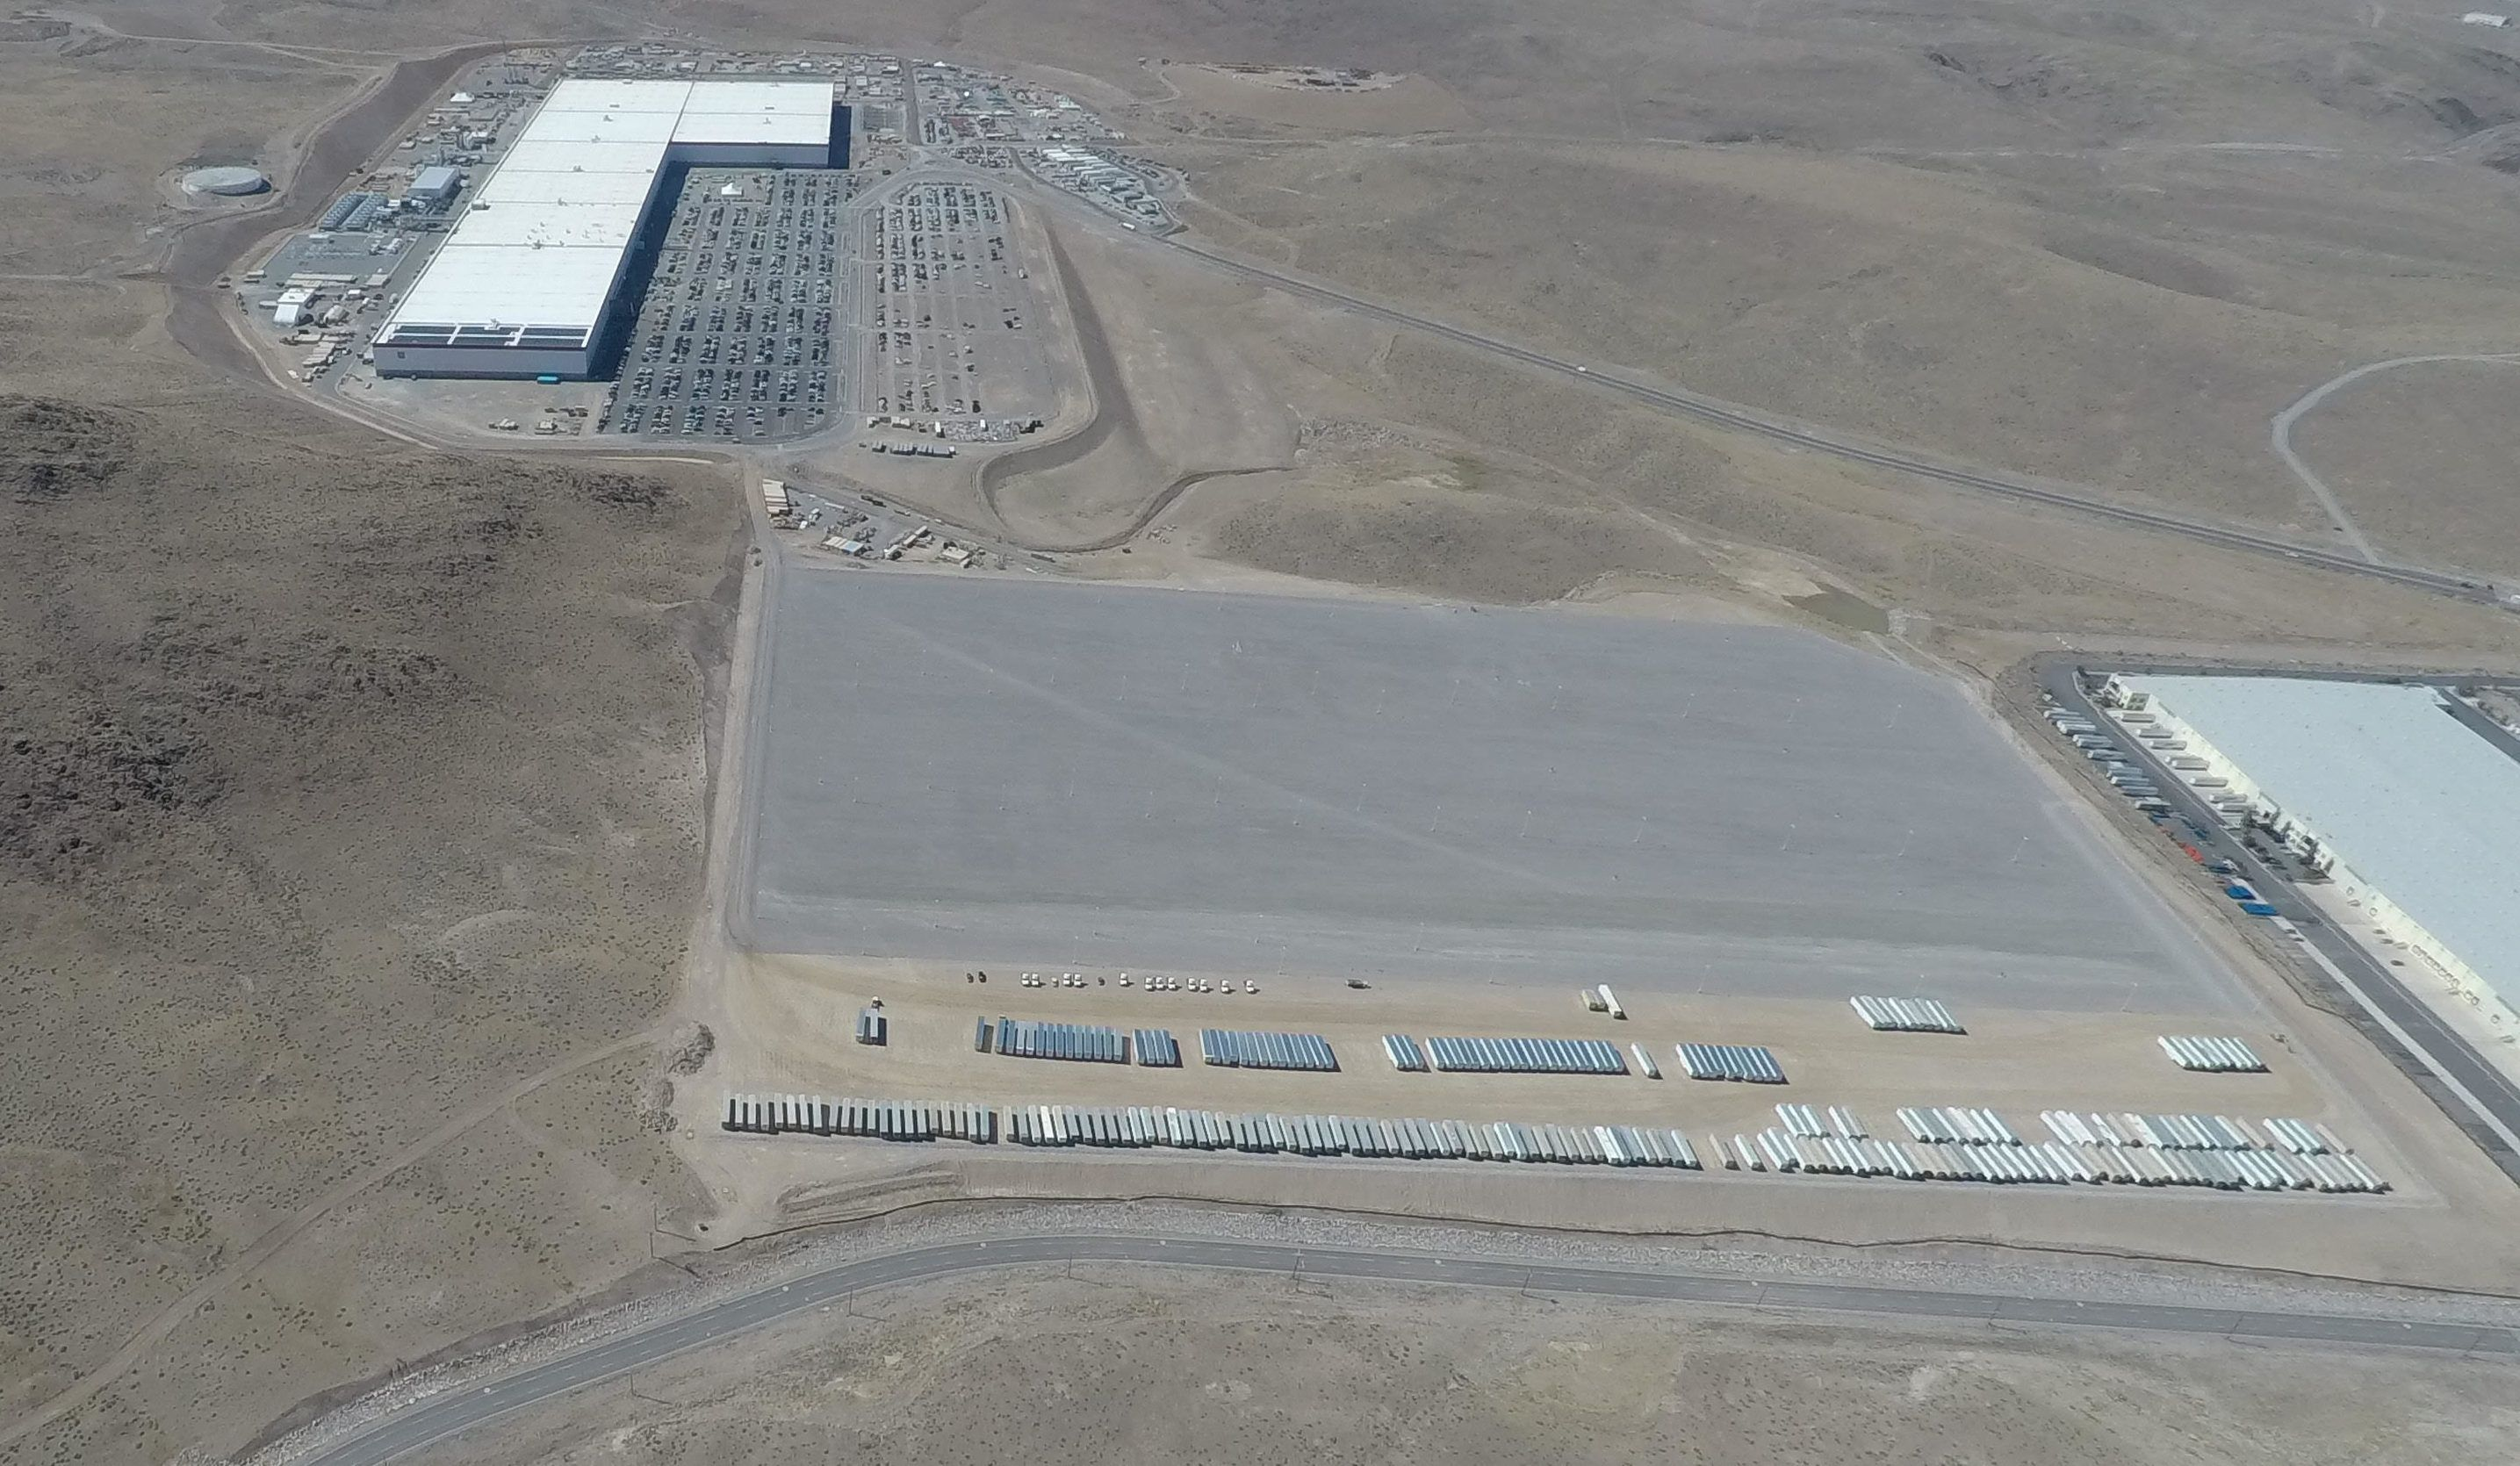 Tesla Gigafactory 1 Expands With Massive New Lot As Site Activity Increases Tesla Aerial Photograph Tesla S